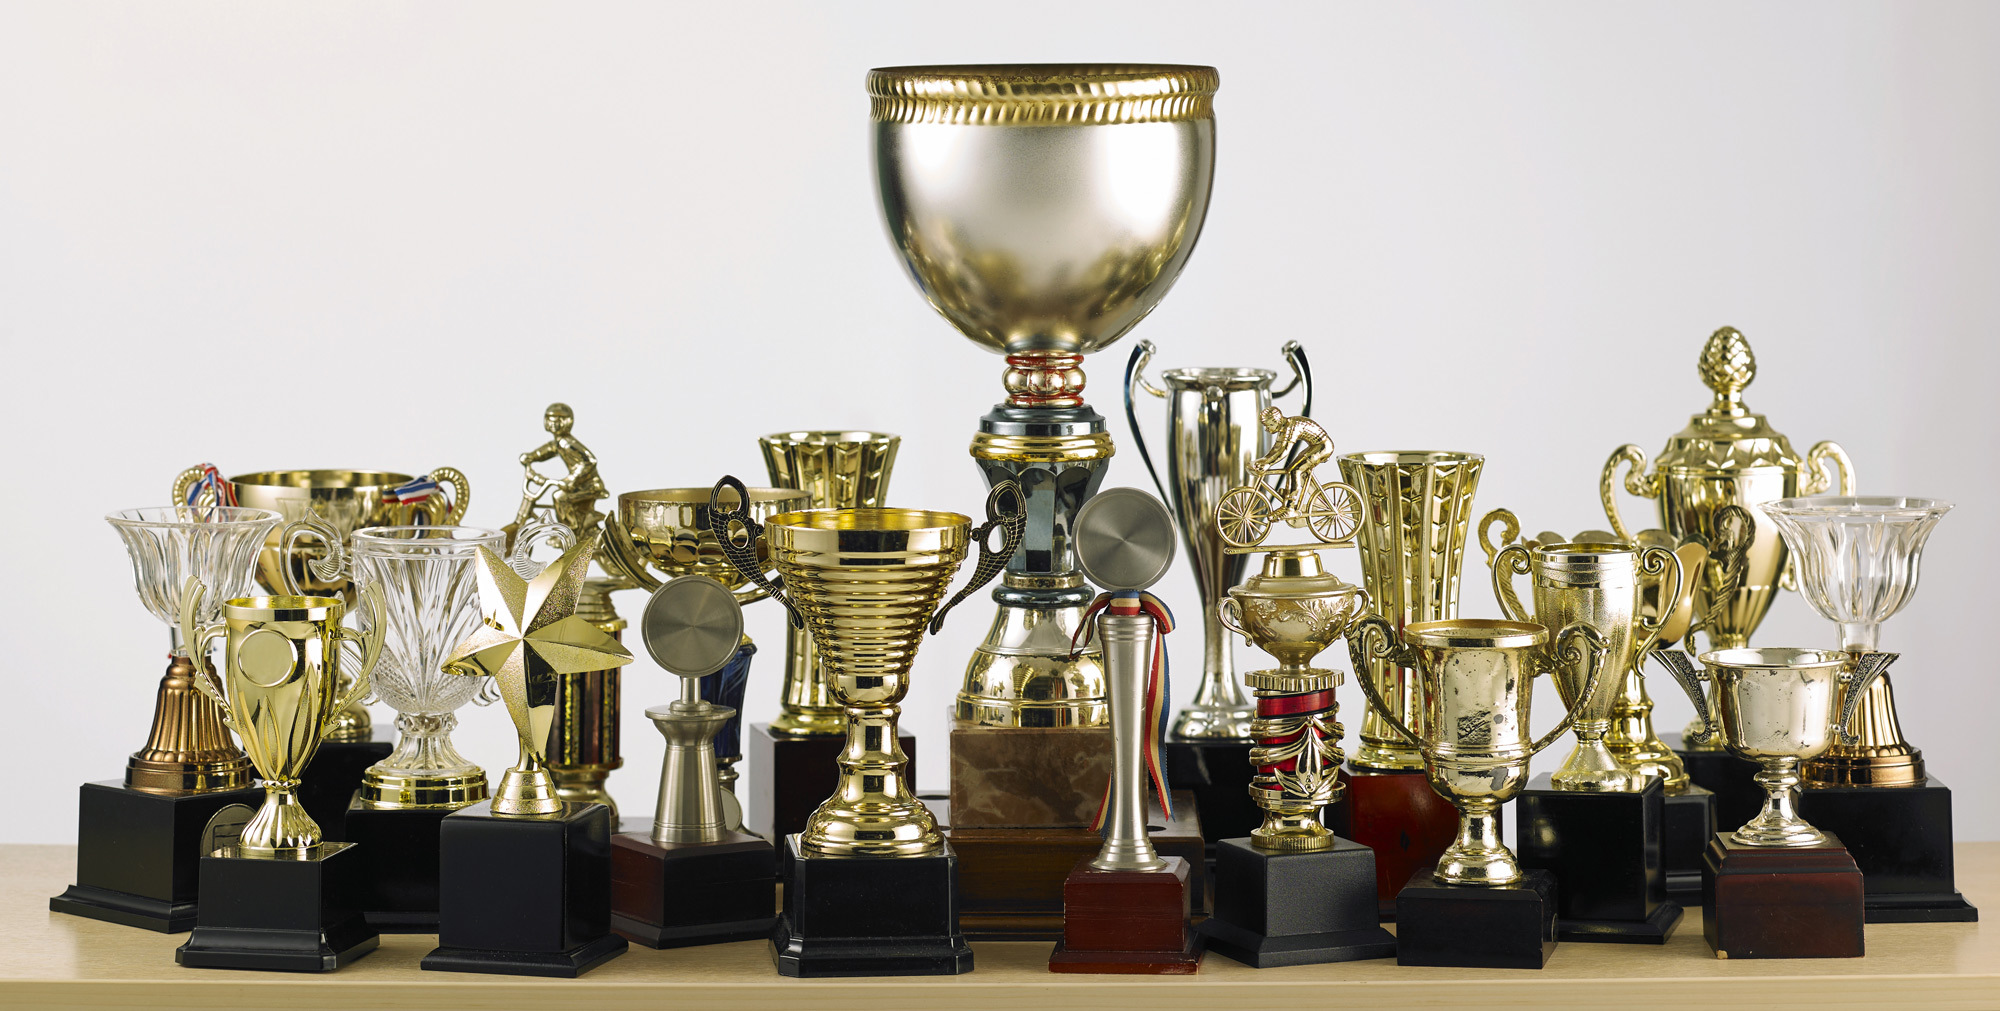 Engraved award shop has a range of trophies to congratulate someone in Auckland